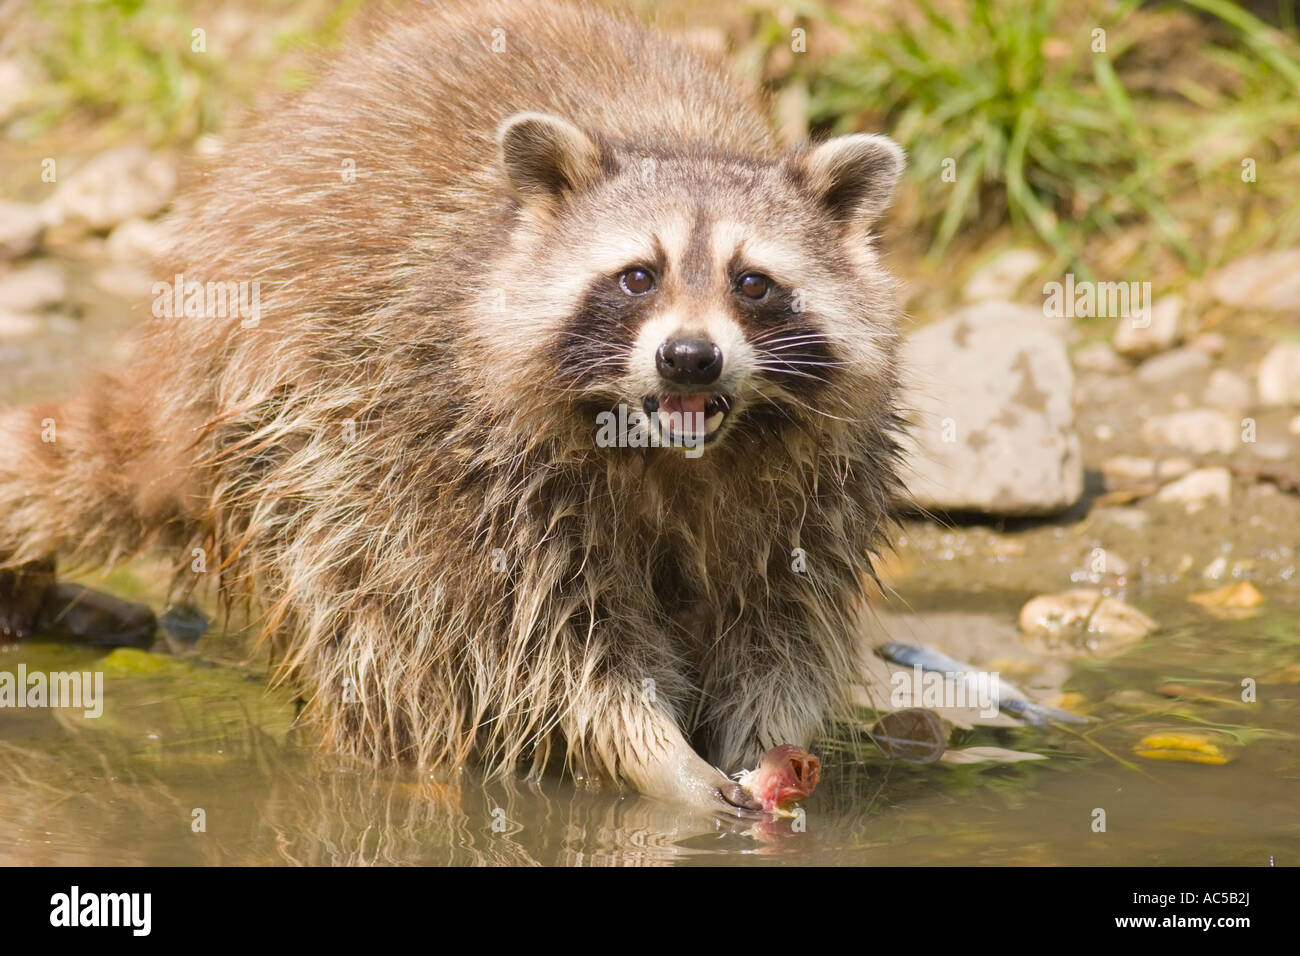 a common raccoon procyon lotor eating a fish at a pond stock